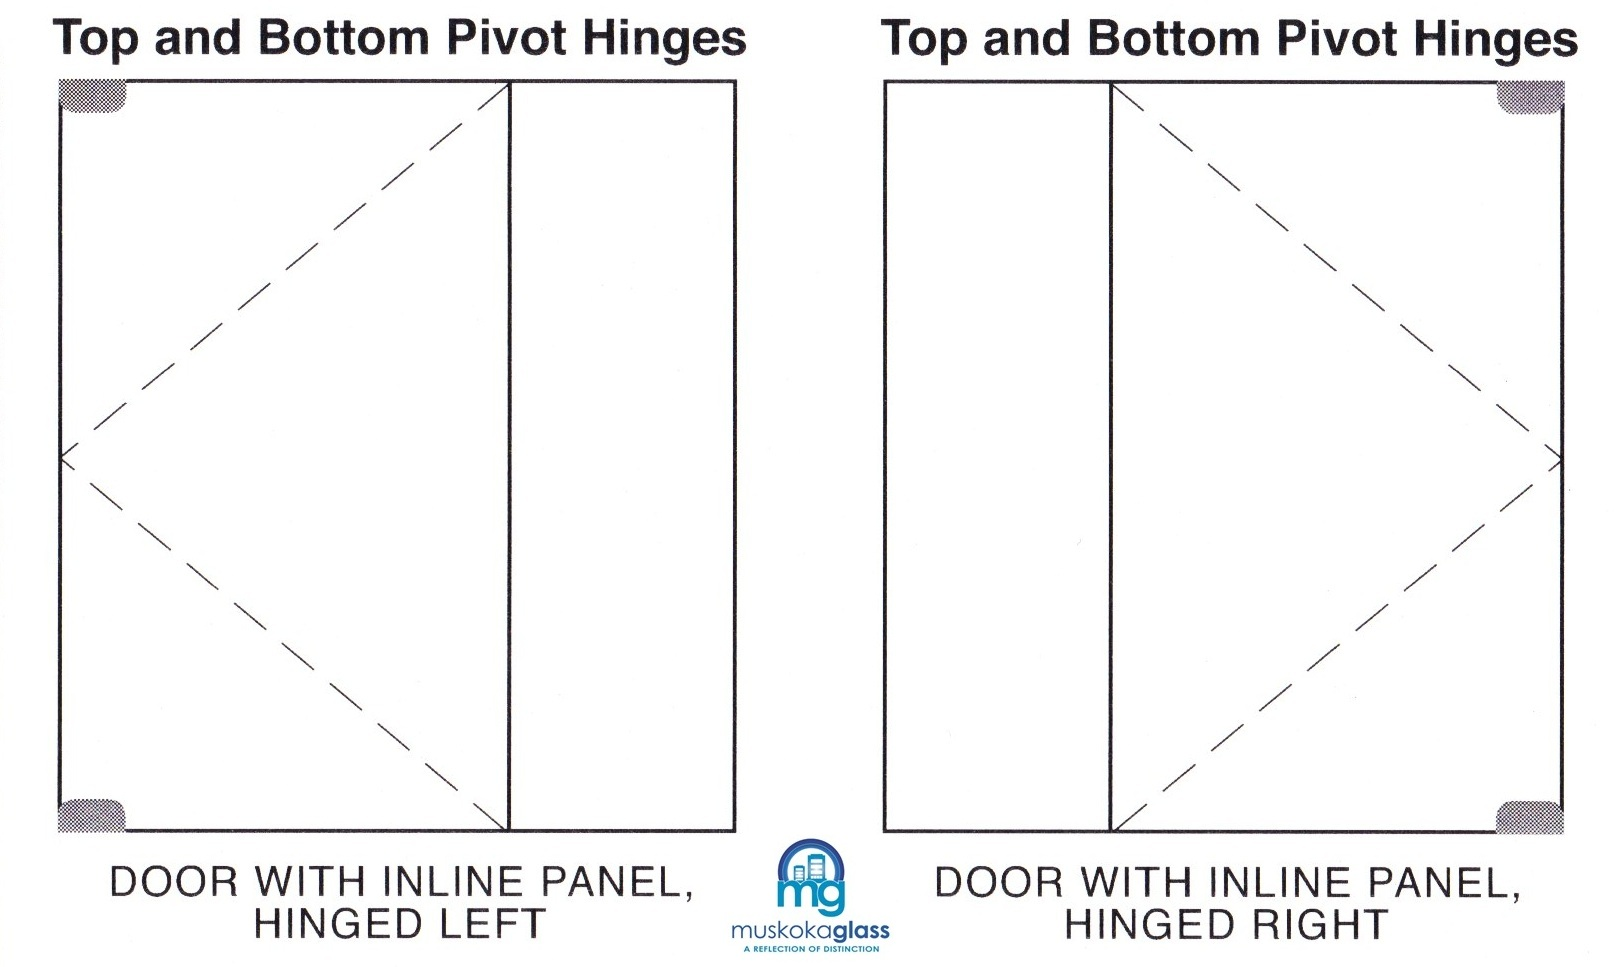 SINGLE DOOR WITH INLINE PANEL